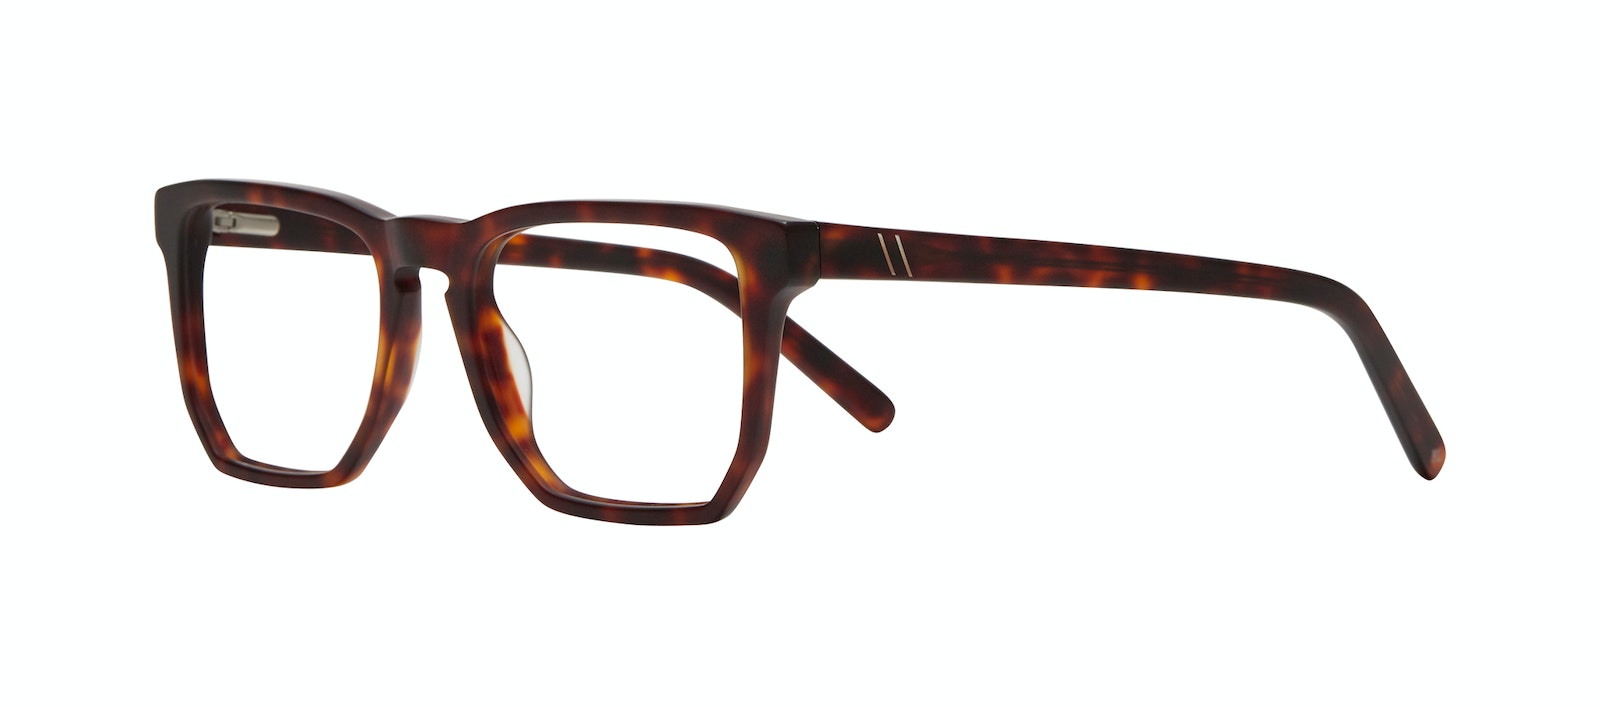 Affordable Fashion Glasses Square Eyeglasses Men Andy Matte Tortoise Tilt